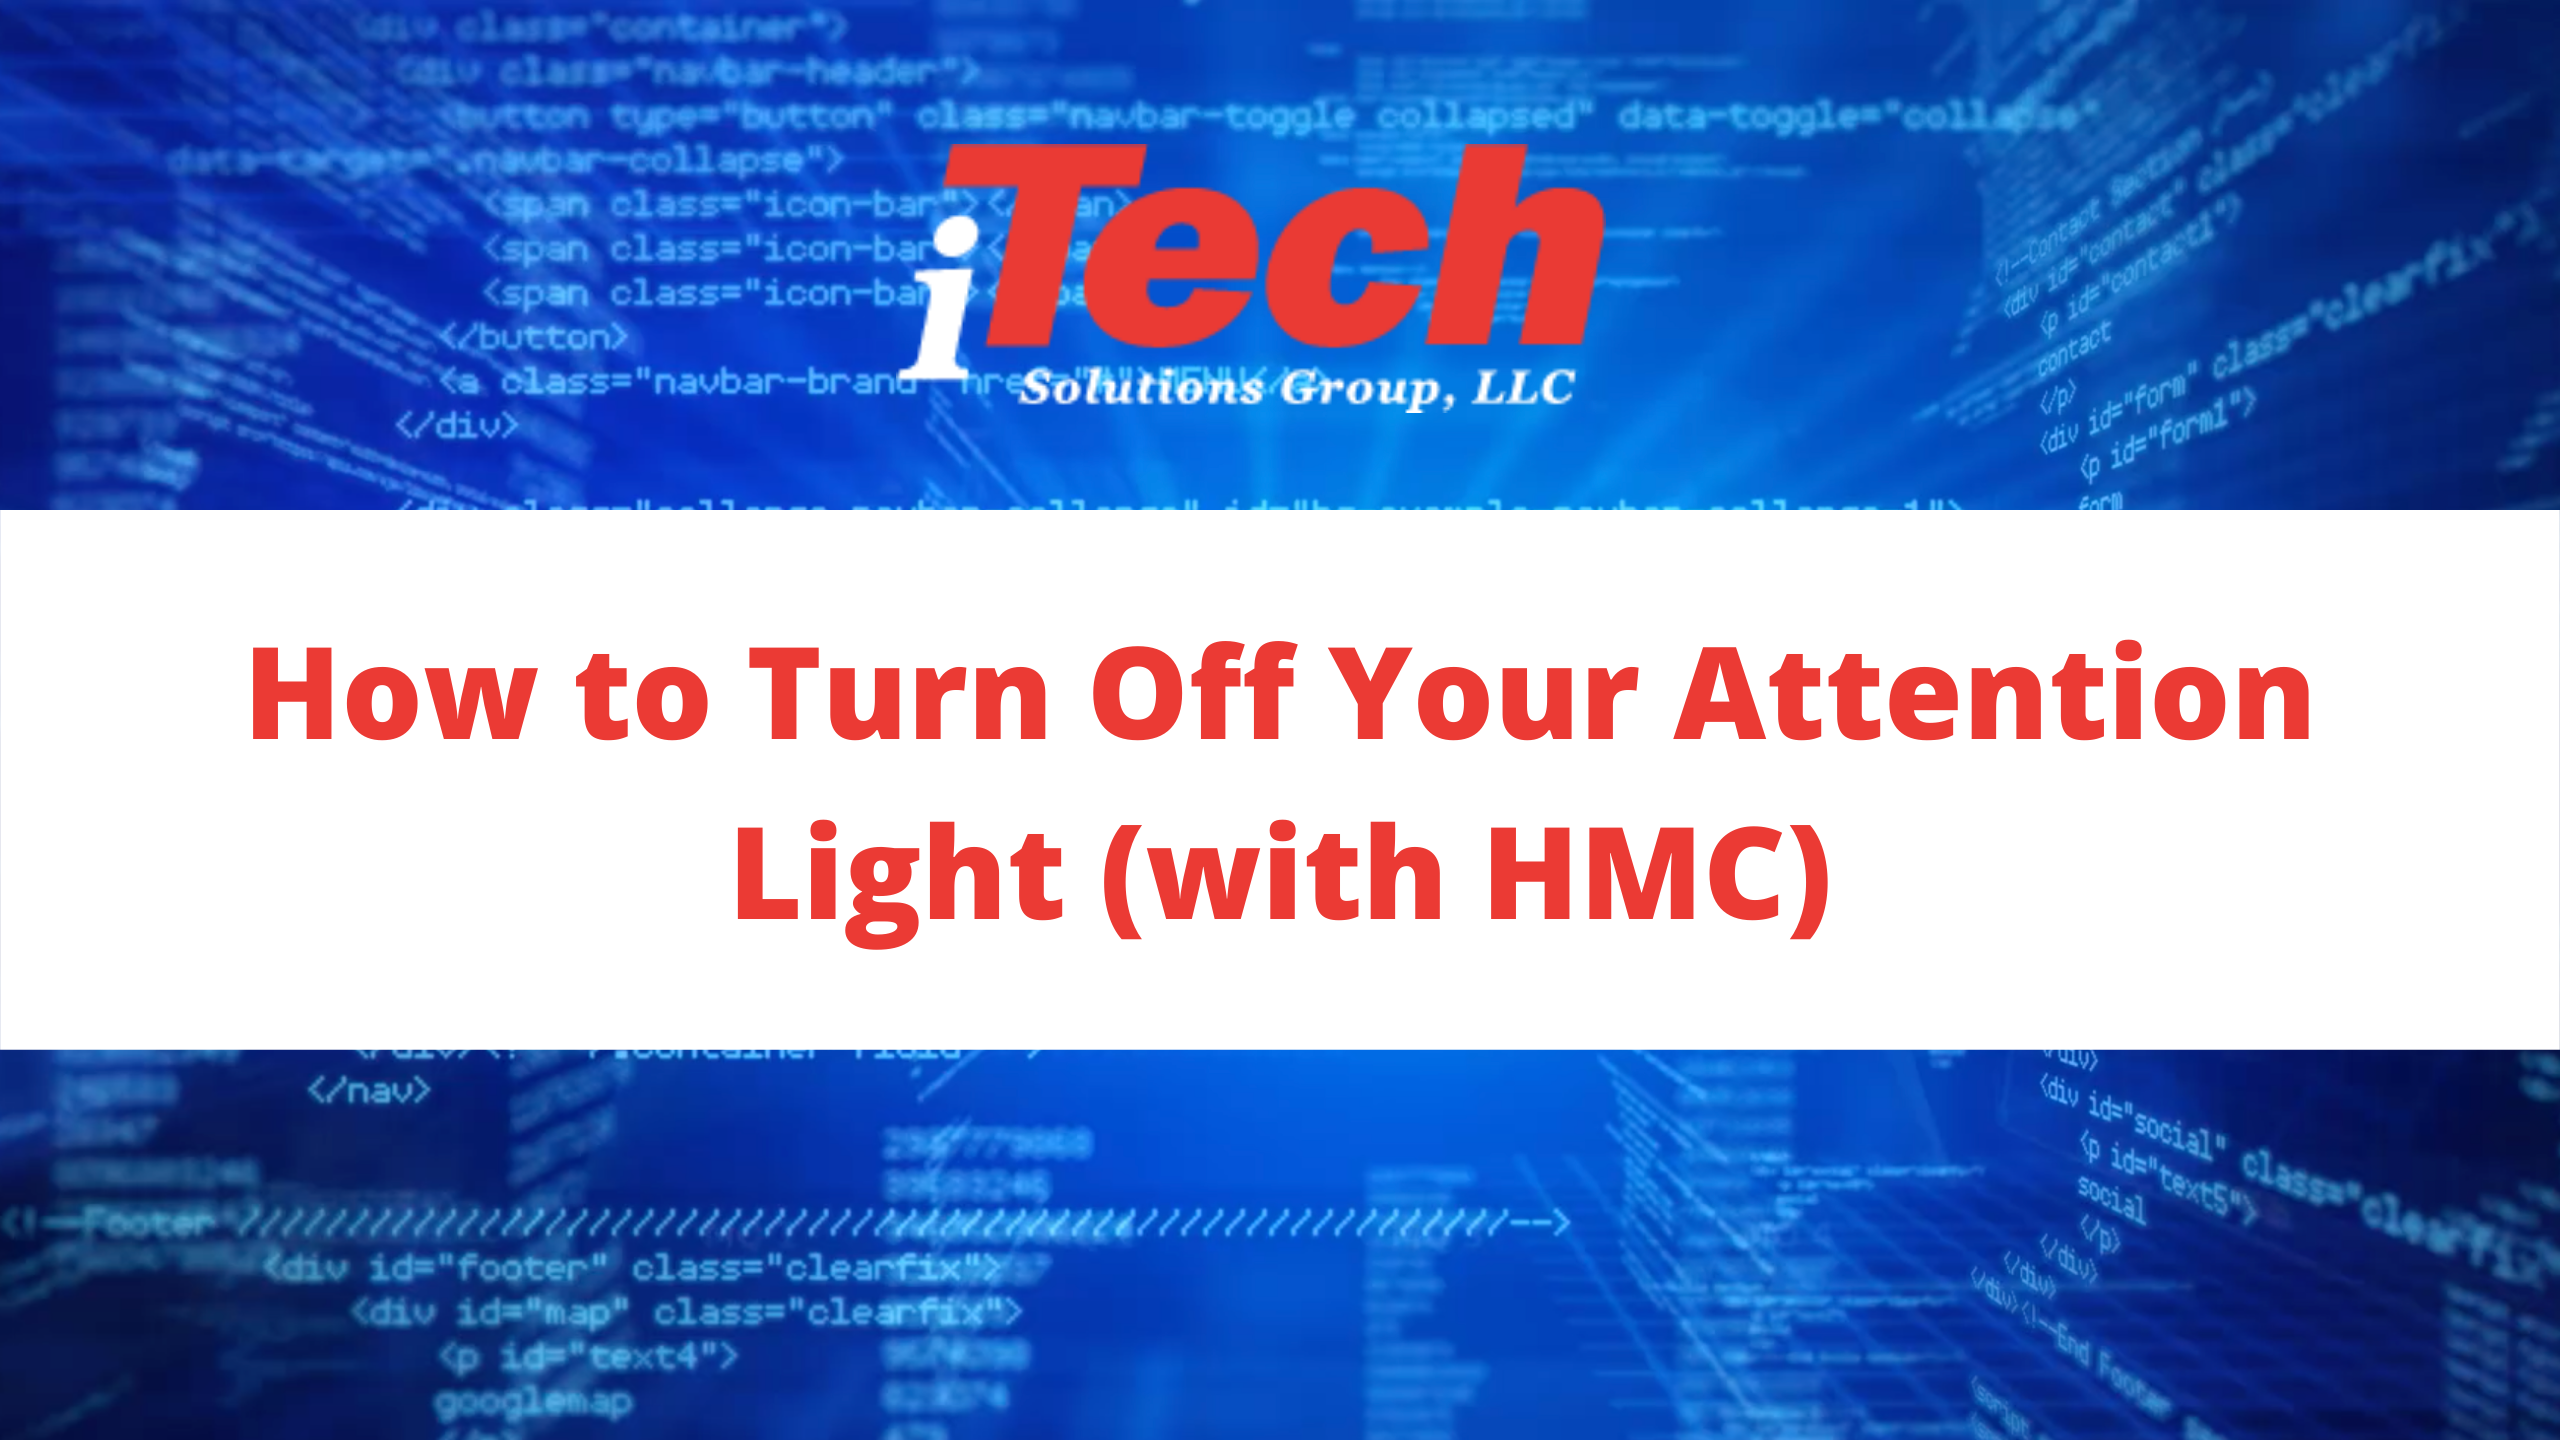 How to Turn Off Your Attention Light (with HMC) (1)